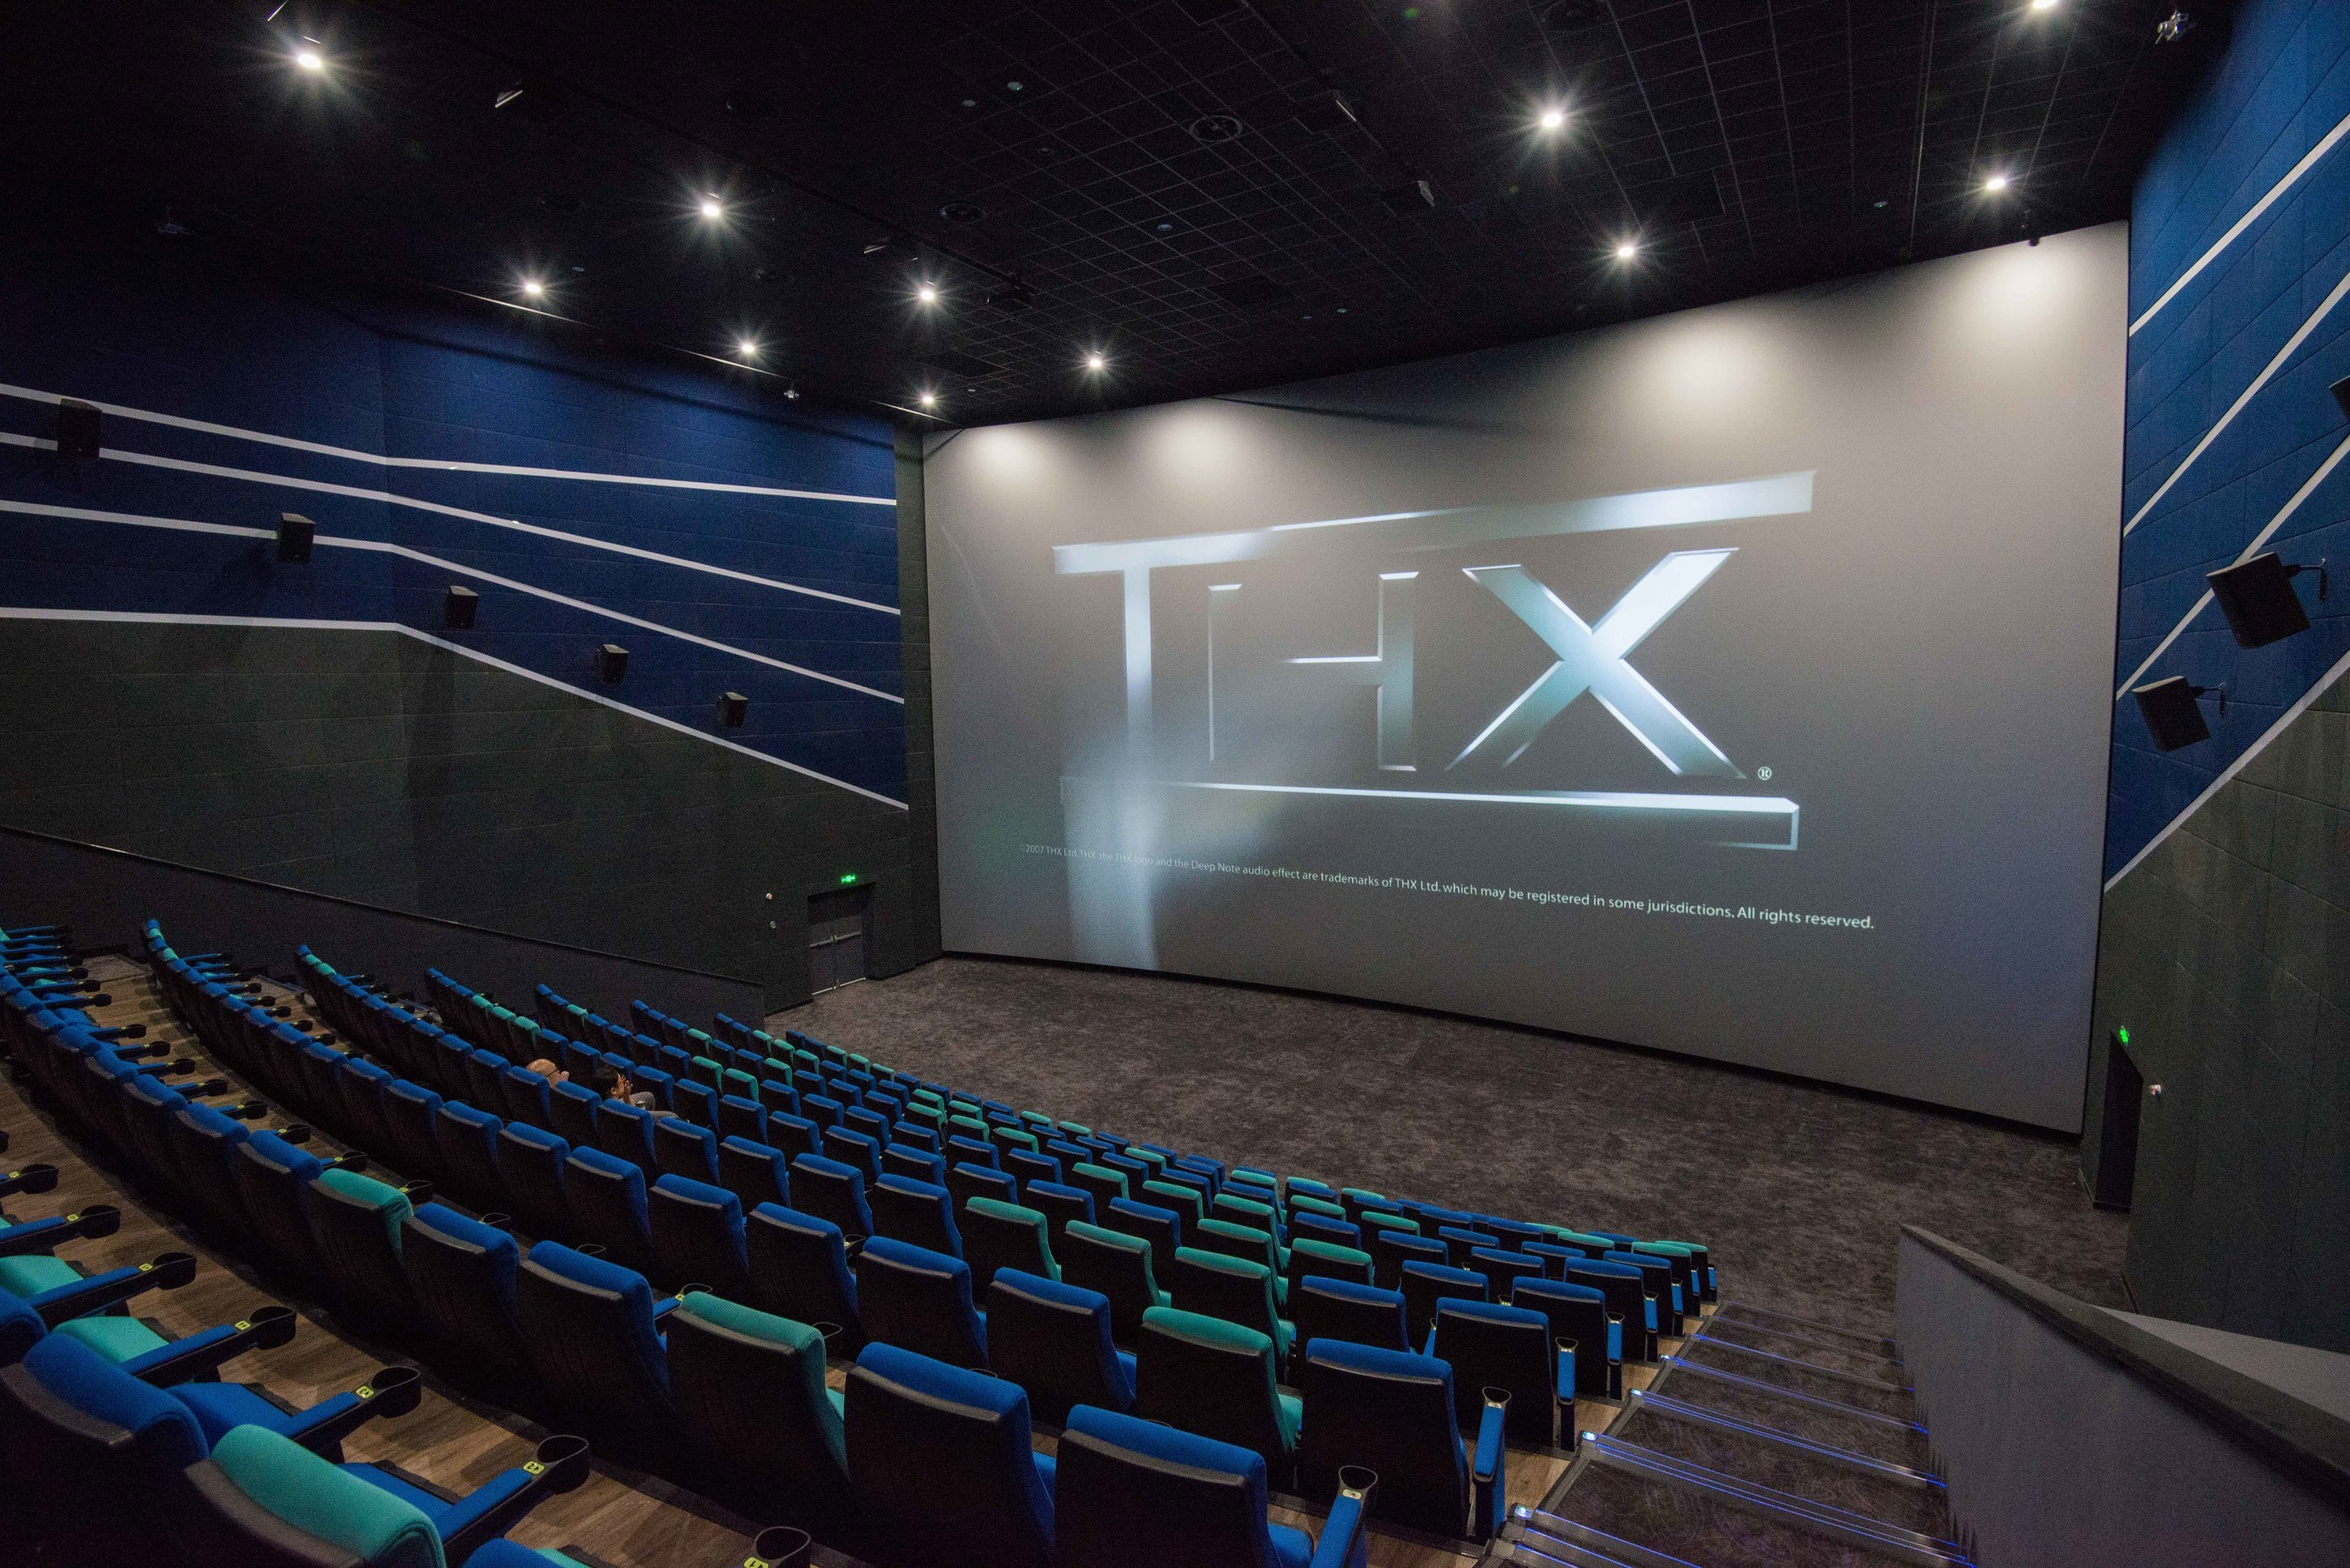 THX and China Film to roll out 400 screens with joint cinema experience